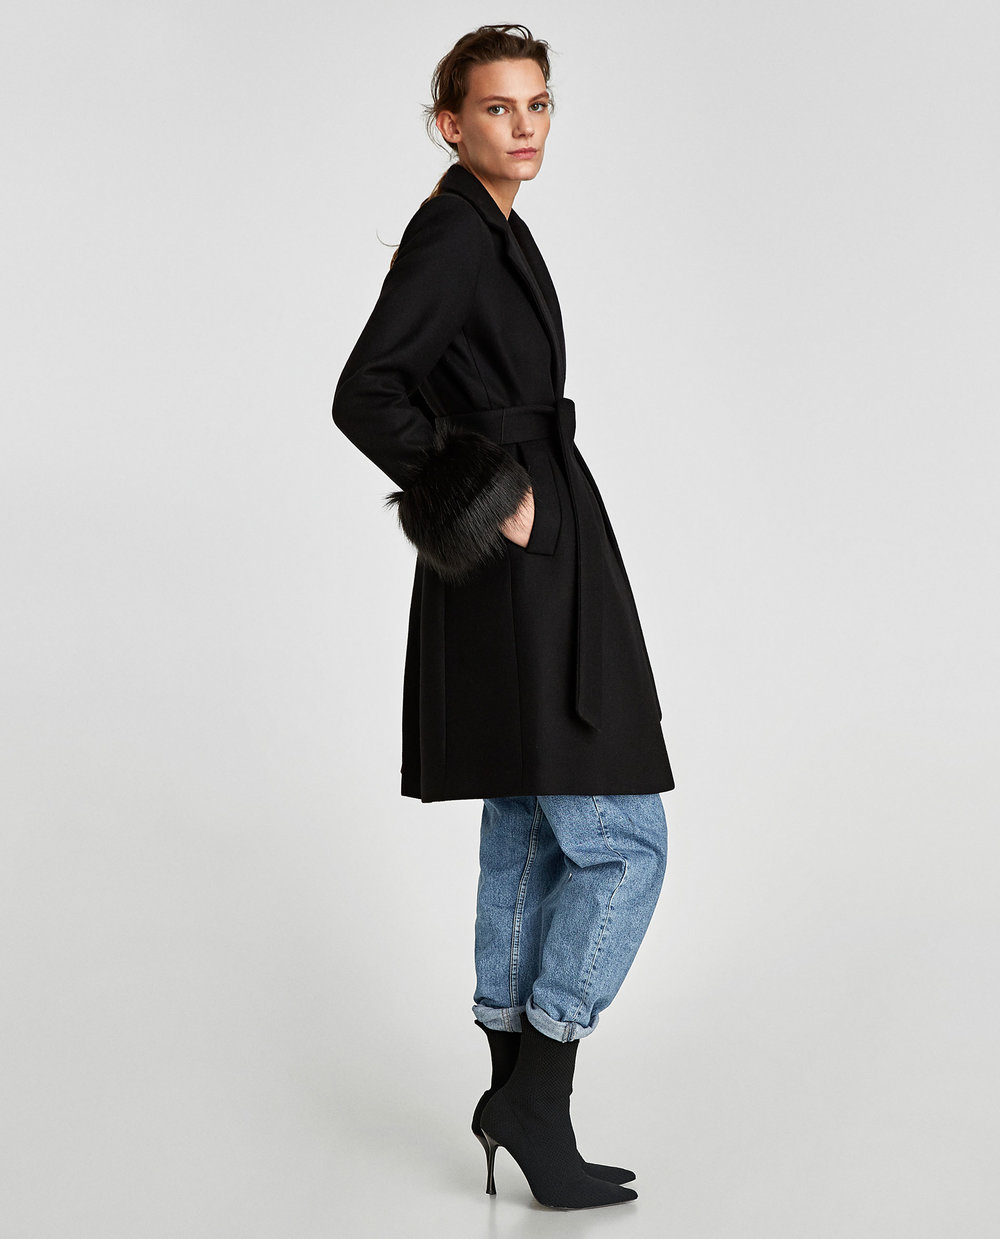 COAT WITH TEXTURED CUFFS. Available in two colors. Zara. $199.